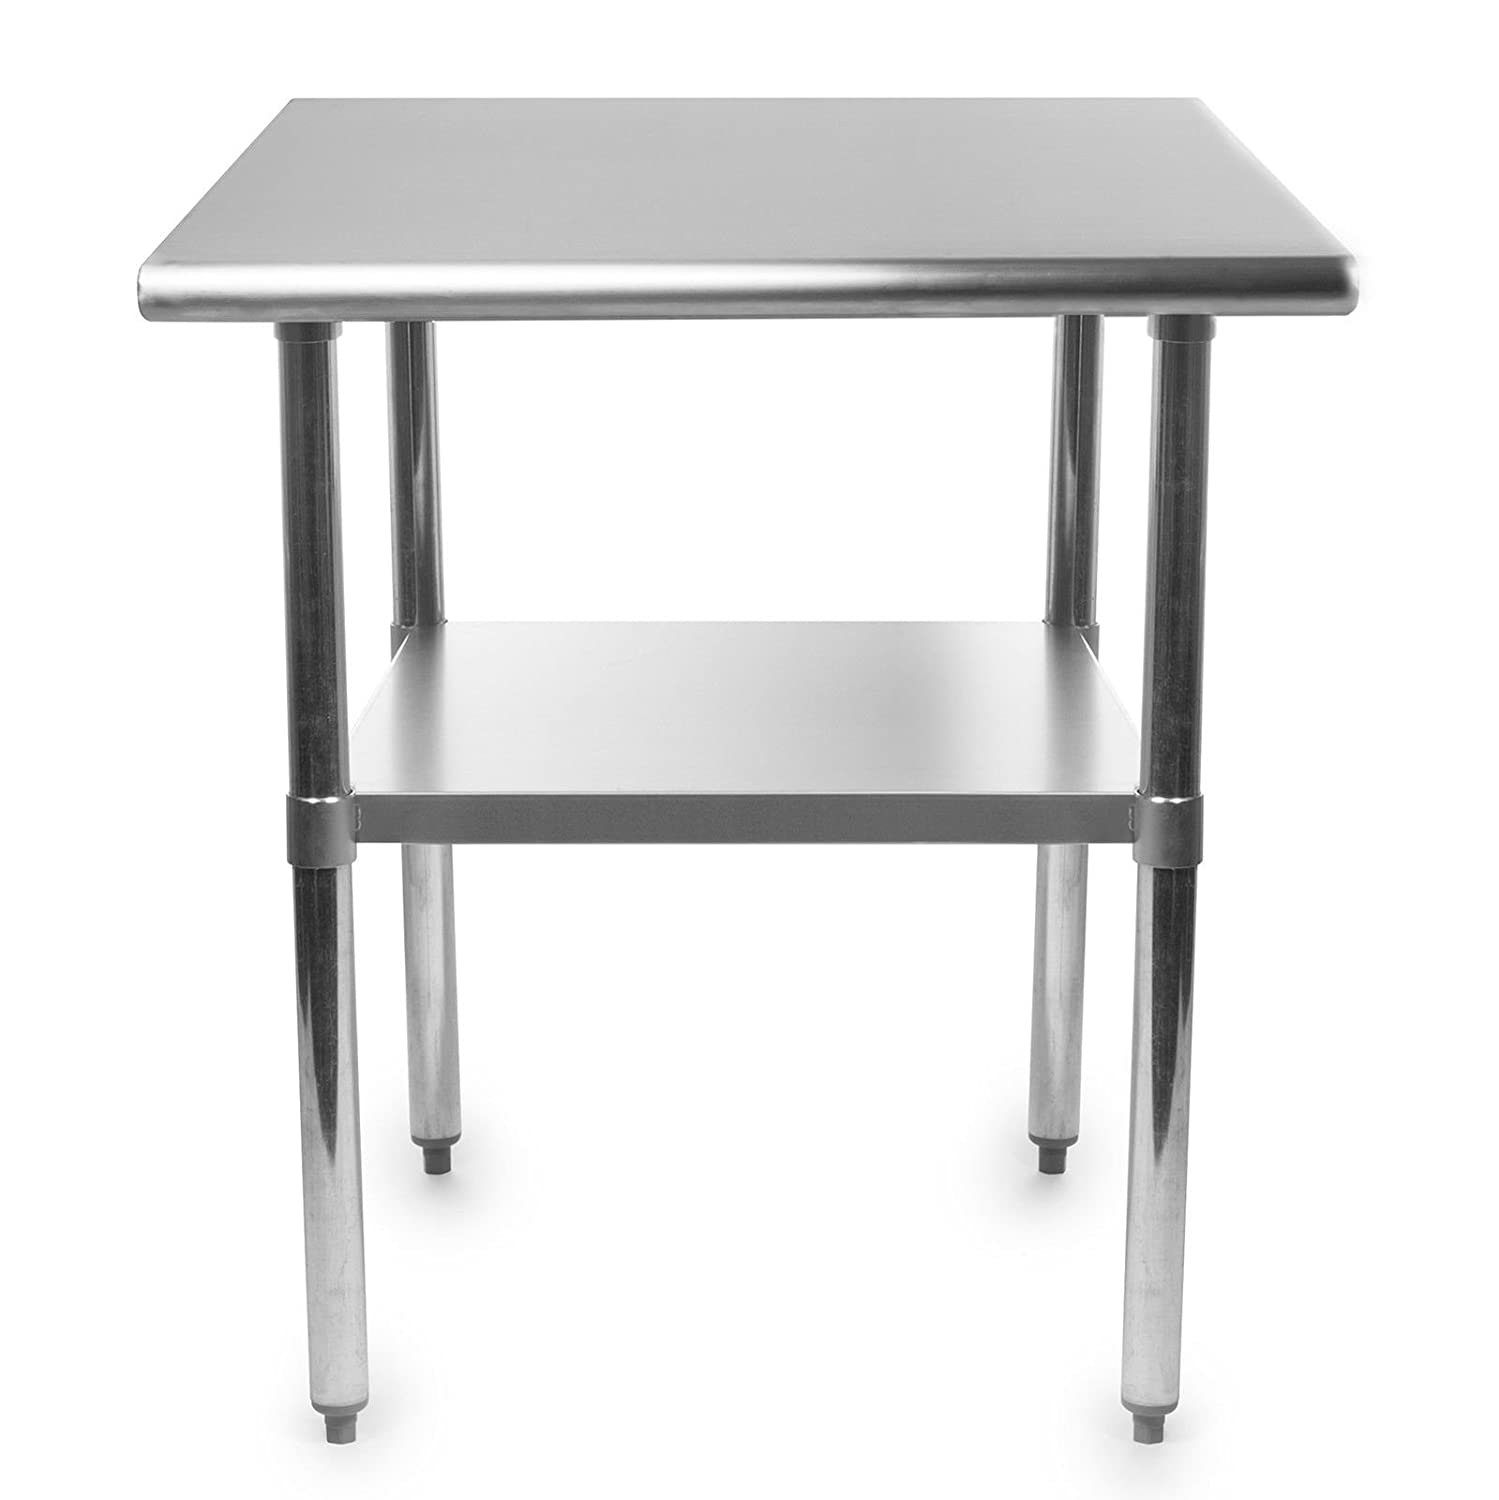 Stainless Steel Kitchen Food Prep Work Table 24 x 12 - NSF - Heavy Duty